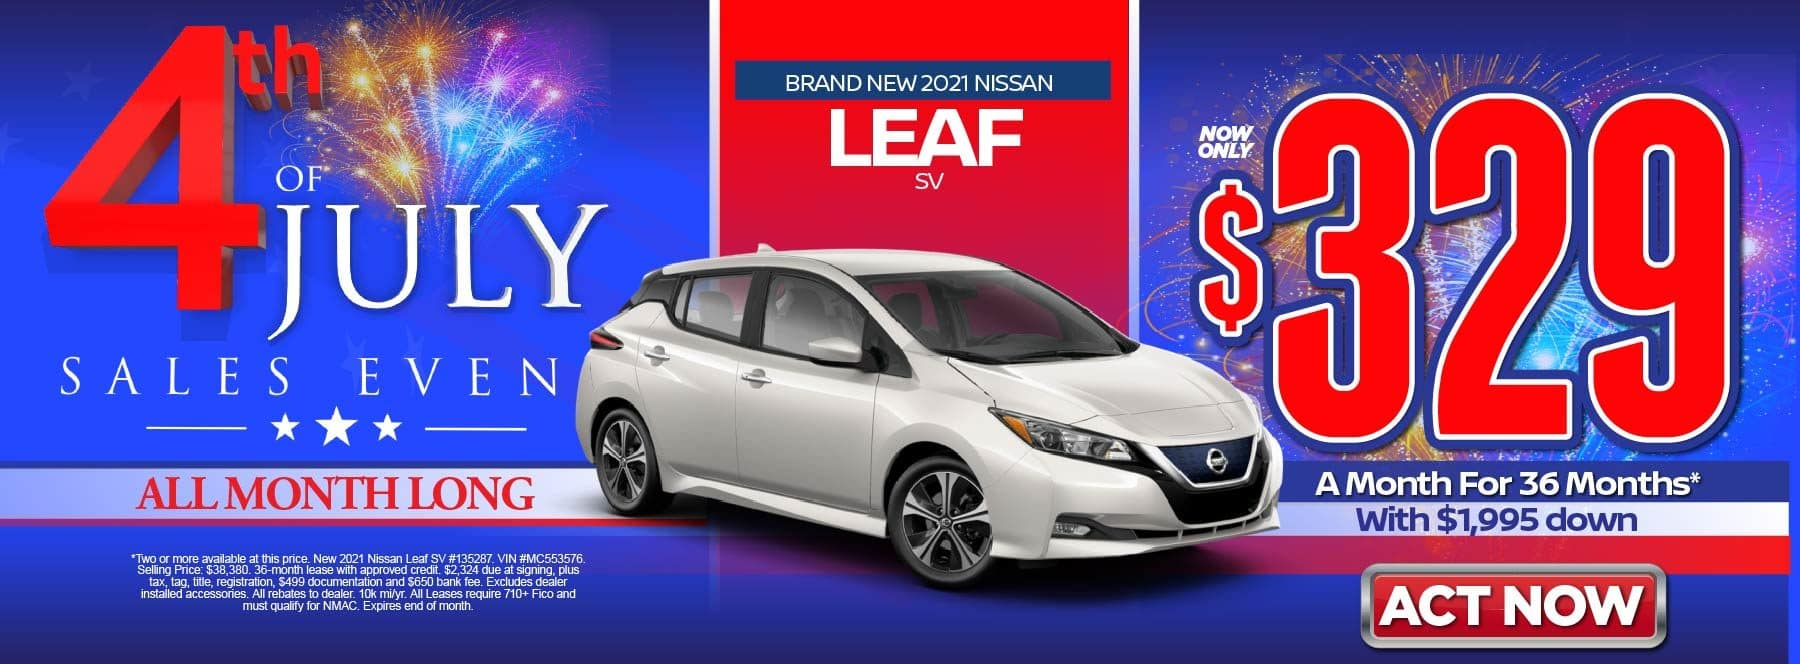 New 2021 Nissan Leaf SV – Lease for $329/mo for 36 months with $1,995 Down* Act now.